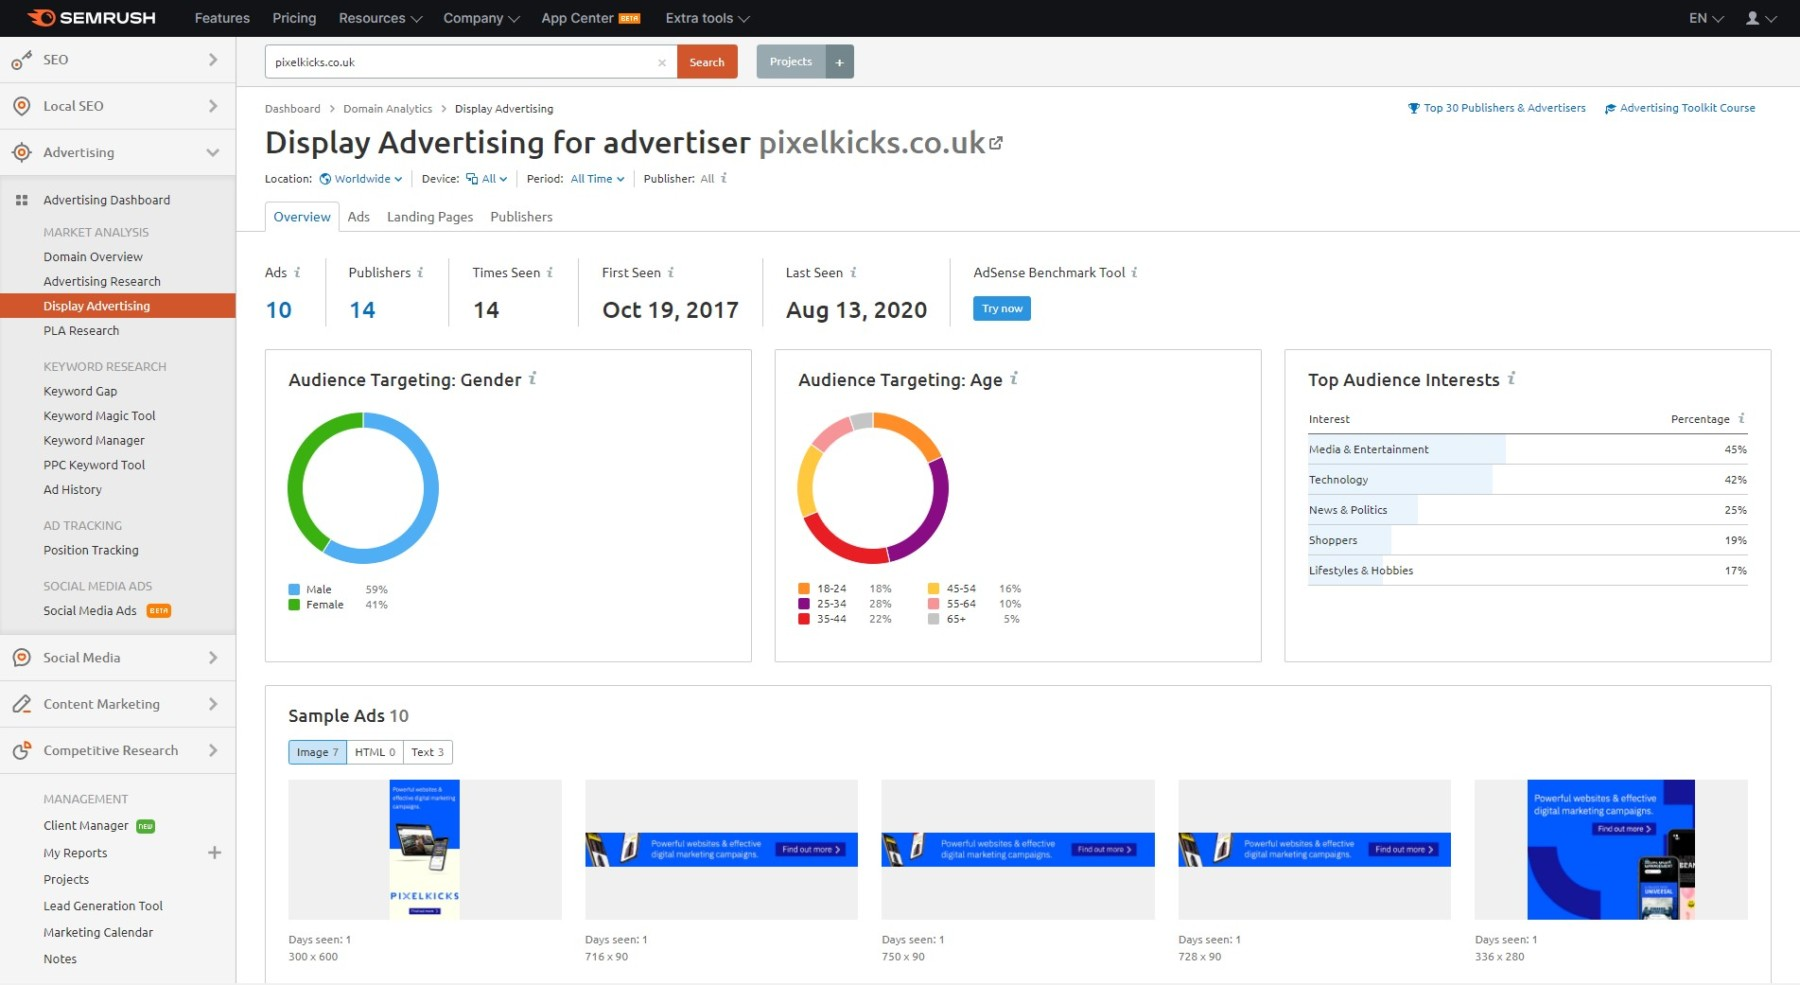 The semrush display advertising analysis tool being used by a Manchester SEO agency